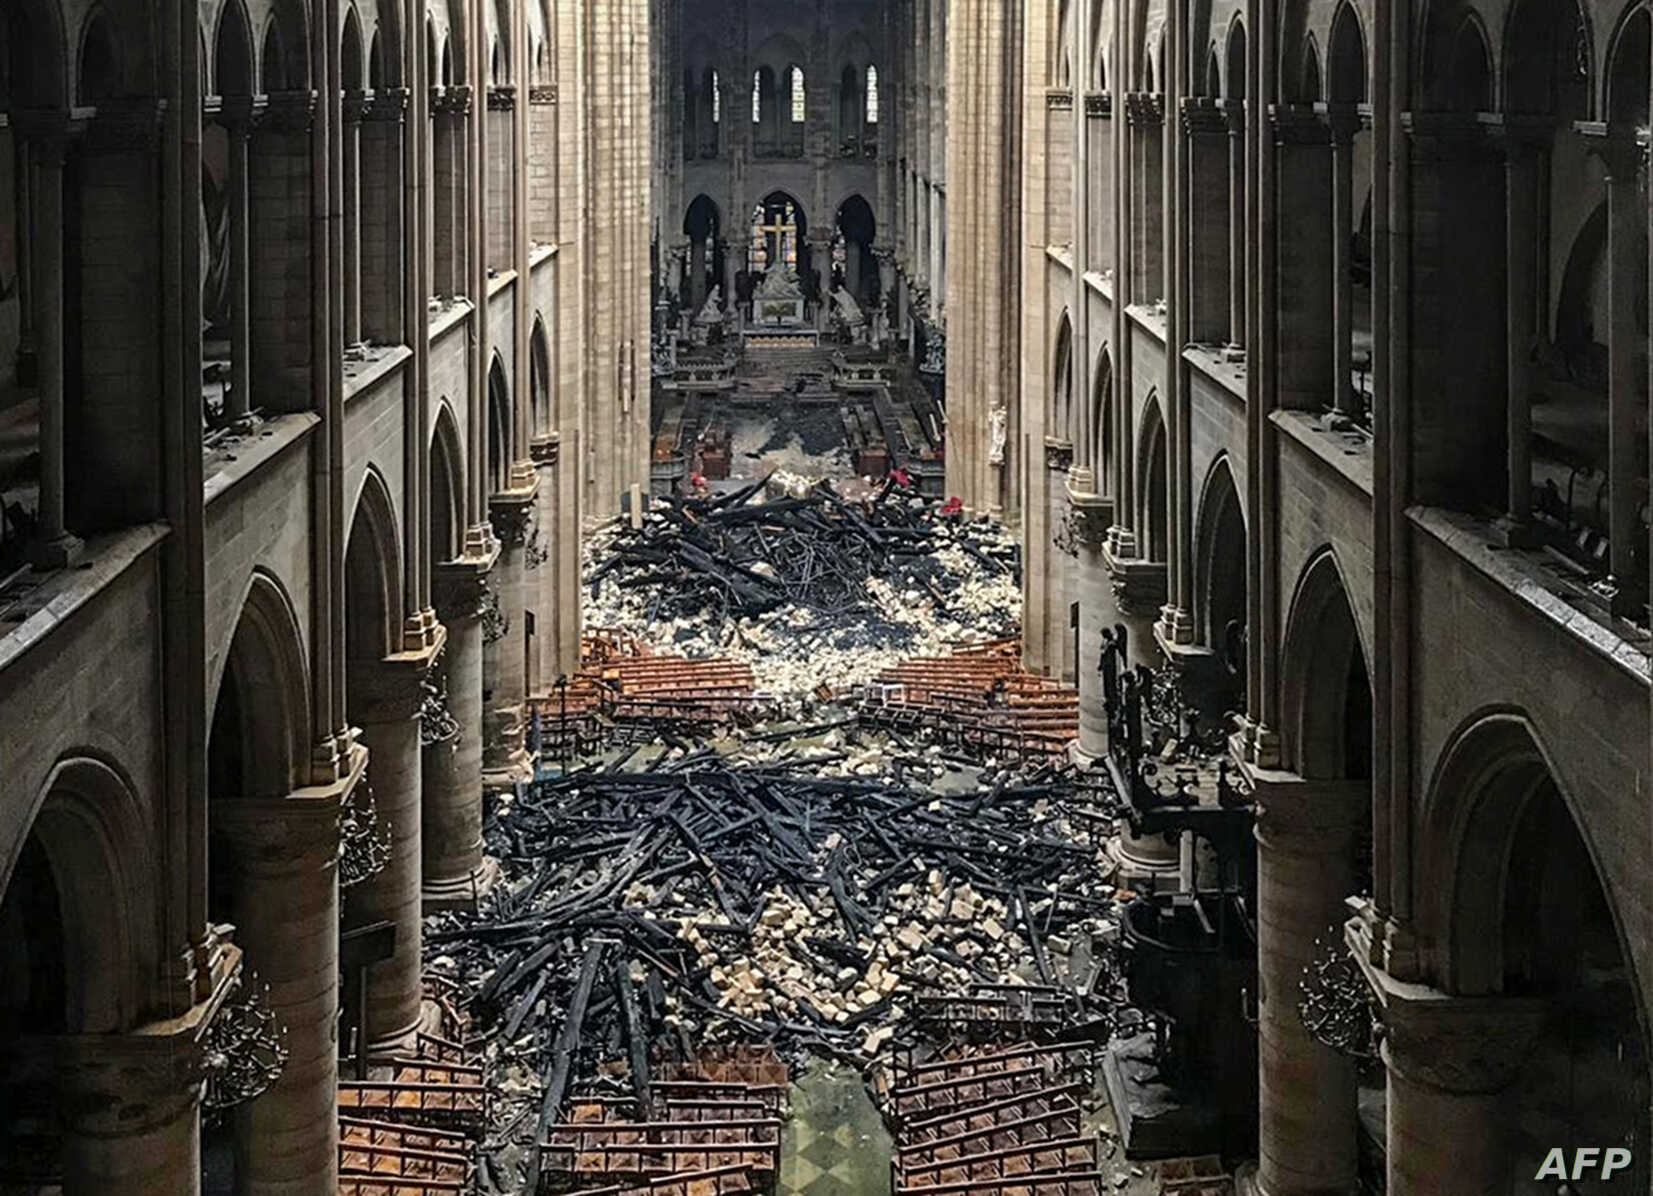 An interior view of the Notre-Dame Cathedral in Paris in the aftermath of a fire that devastated the cathedral, April 16, 2019.